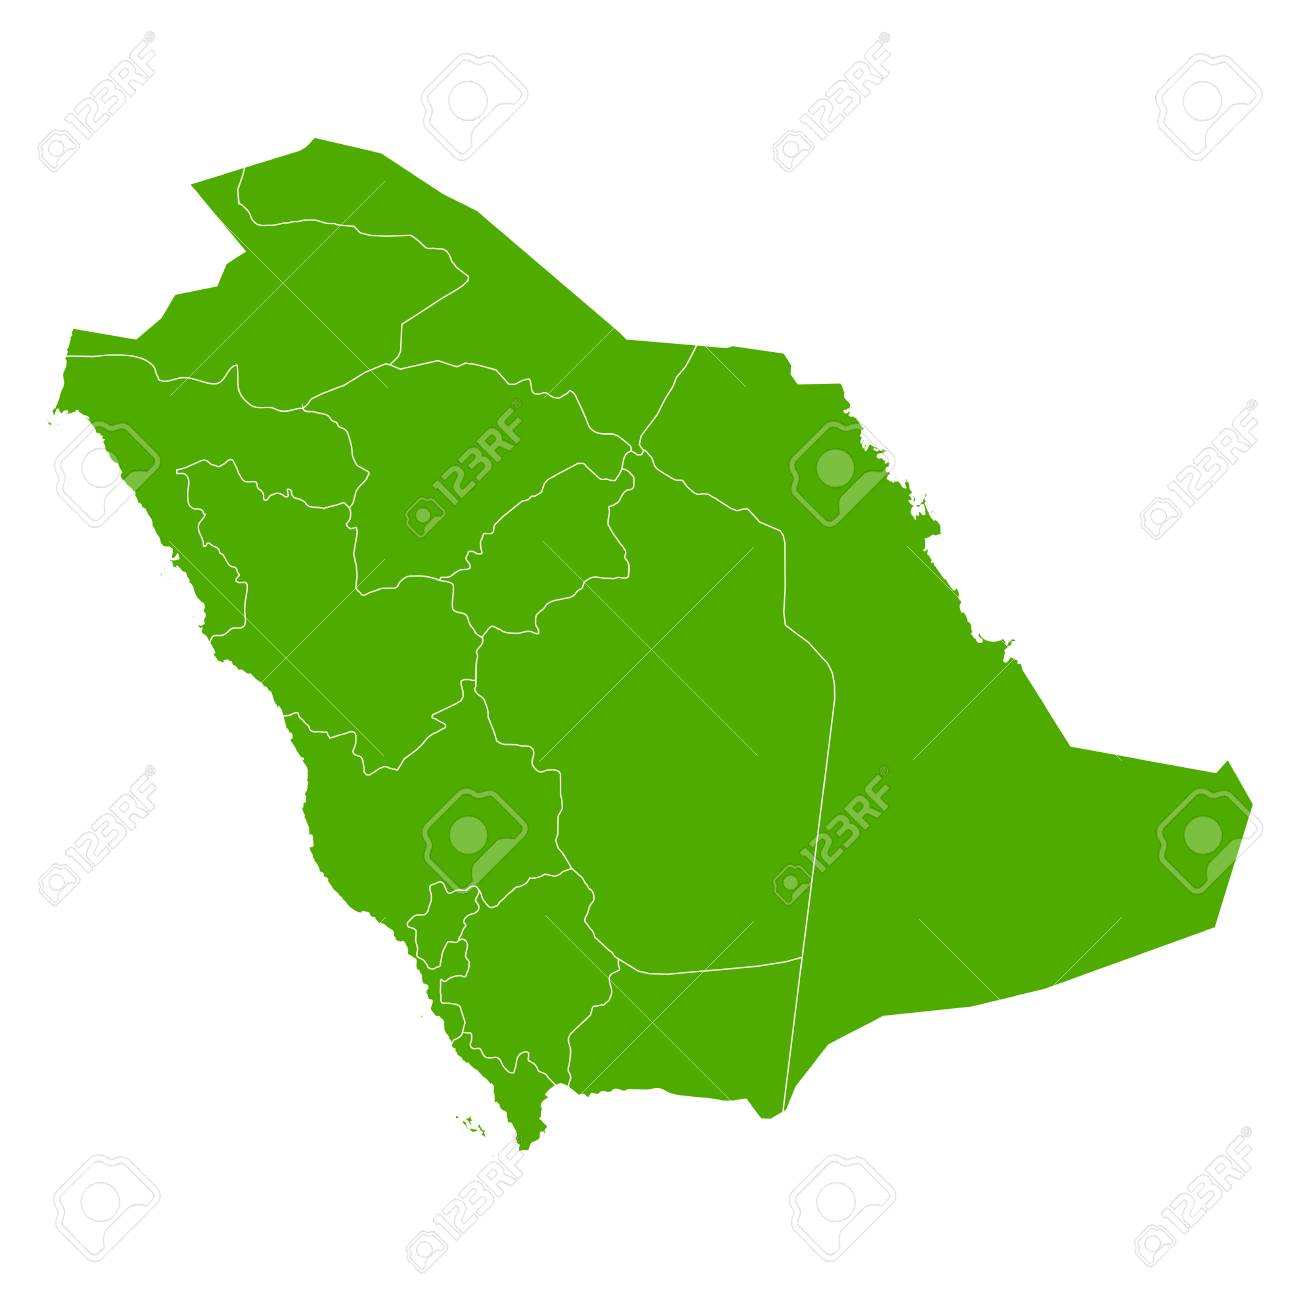 Saudi Arabia Map Country Icon Royalty Free Cliparts, Vectors, And ...